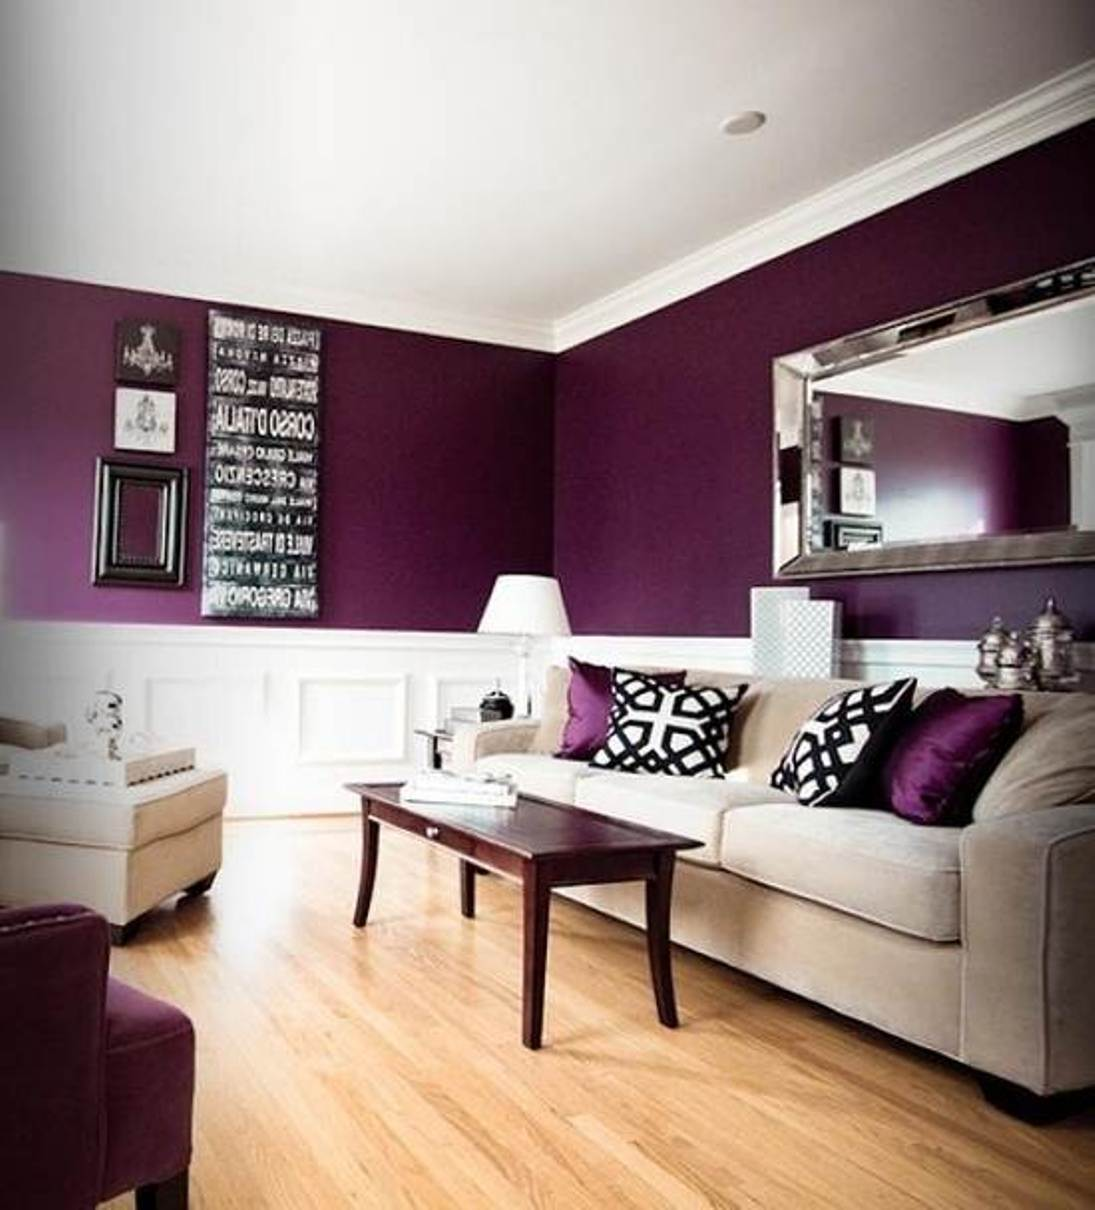 wohnzimmer grau weiß lila:Purple Living Room Color Ideas